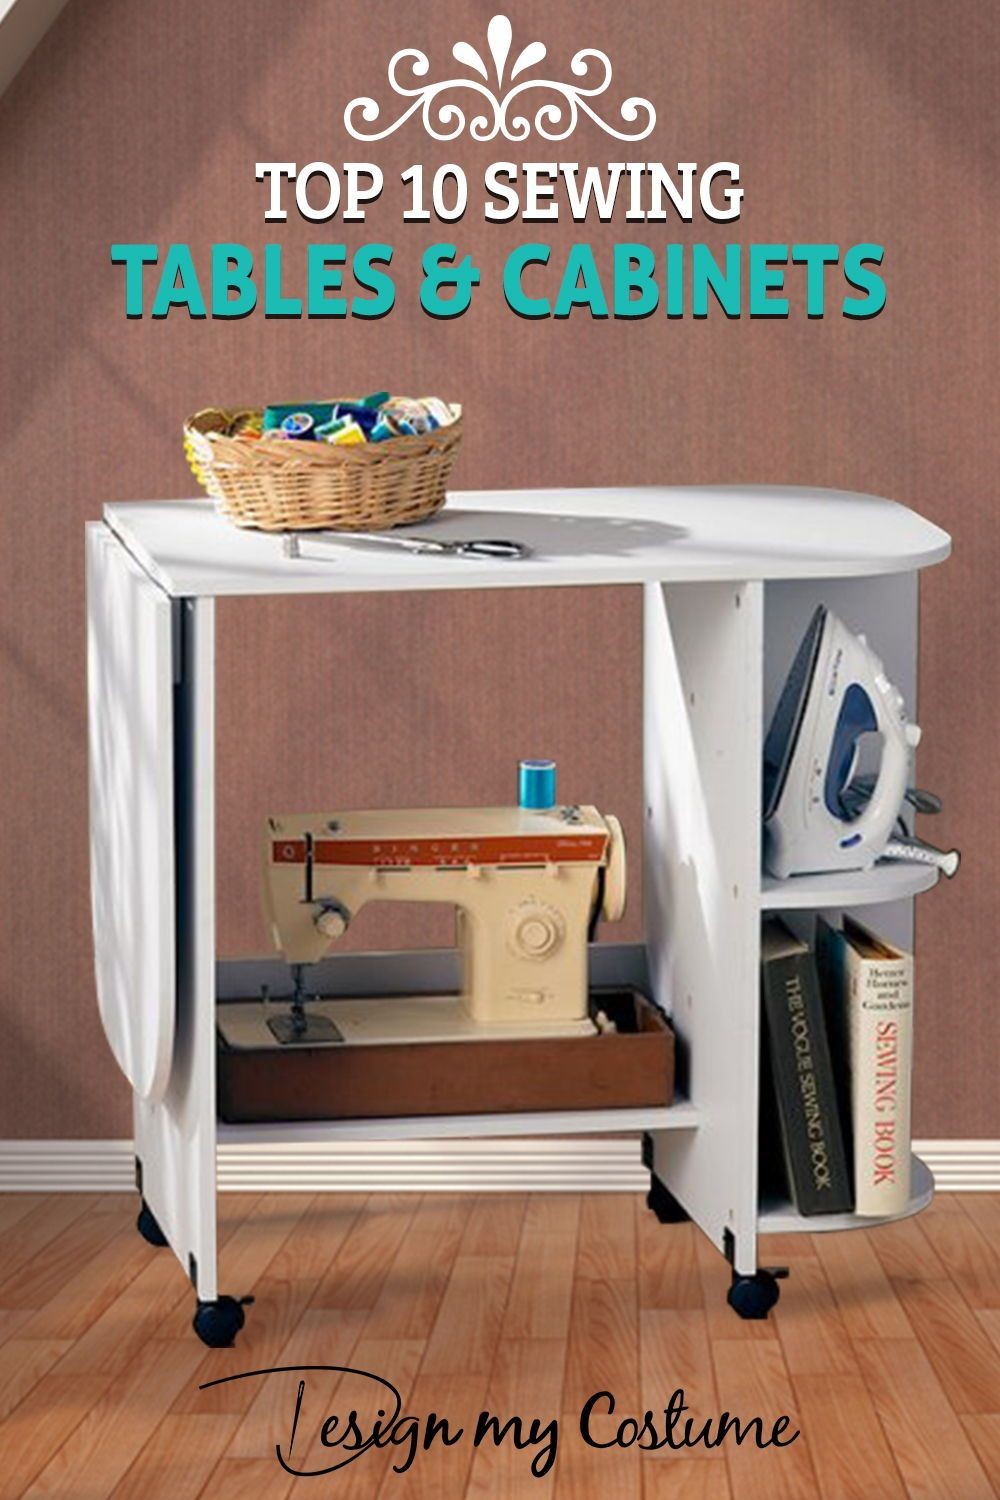 Top 10 Sewing Tables Cabinets March 2021 Reviews Buyers Guide Diy Sewing Table Sewing Table Sewing Machine Table Diy